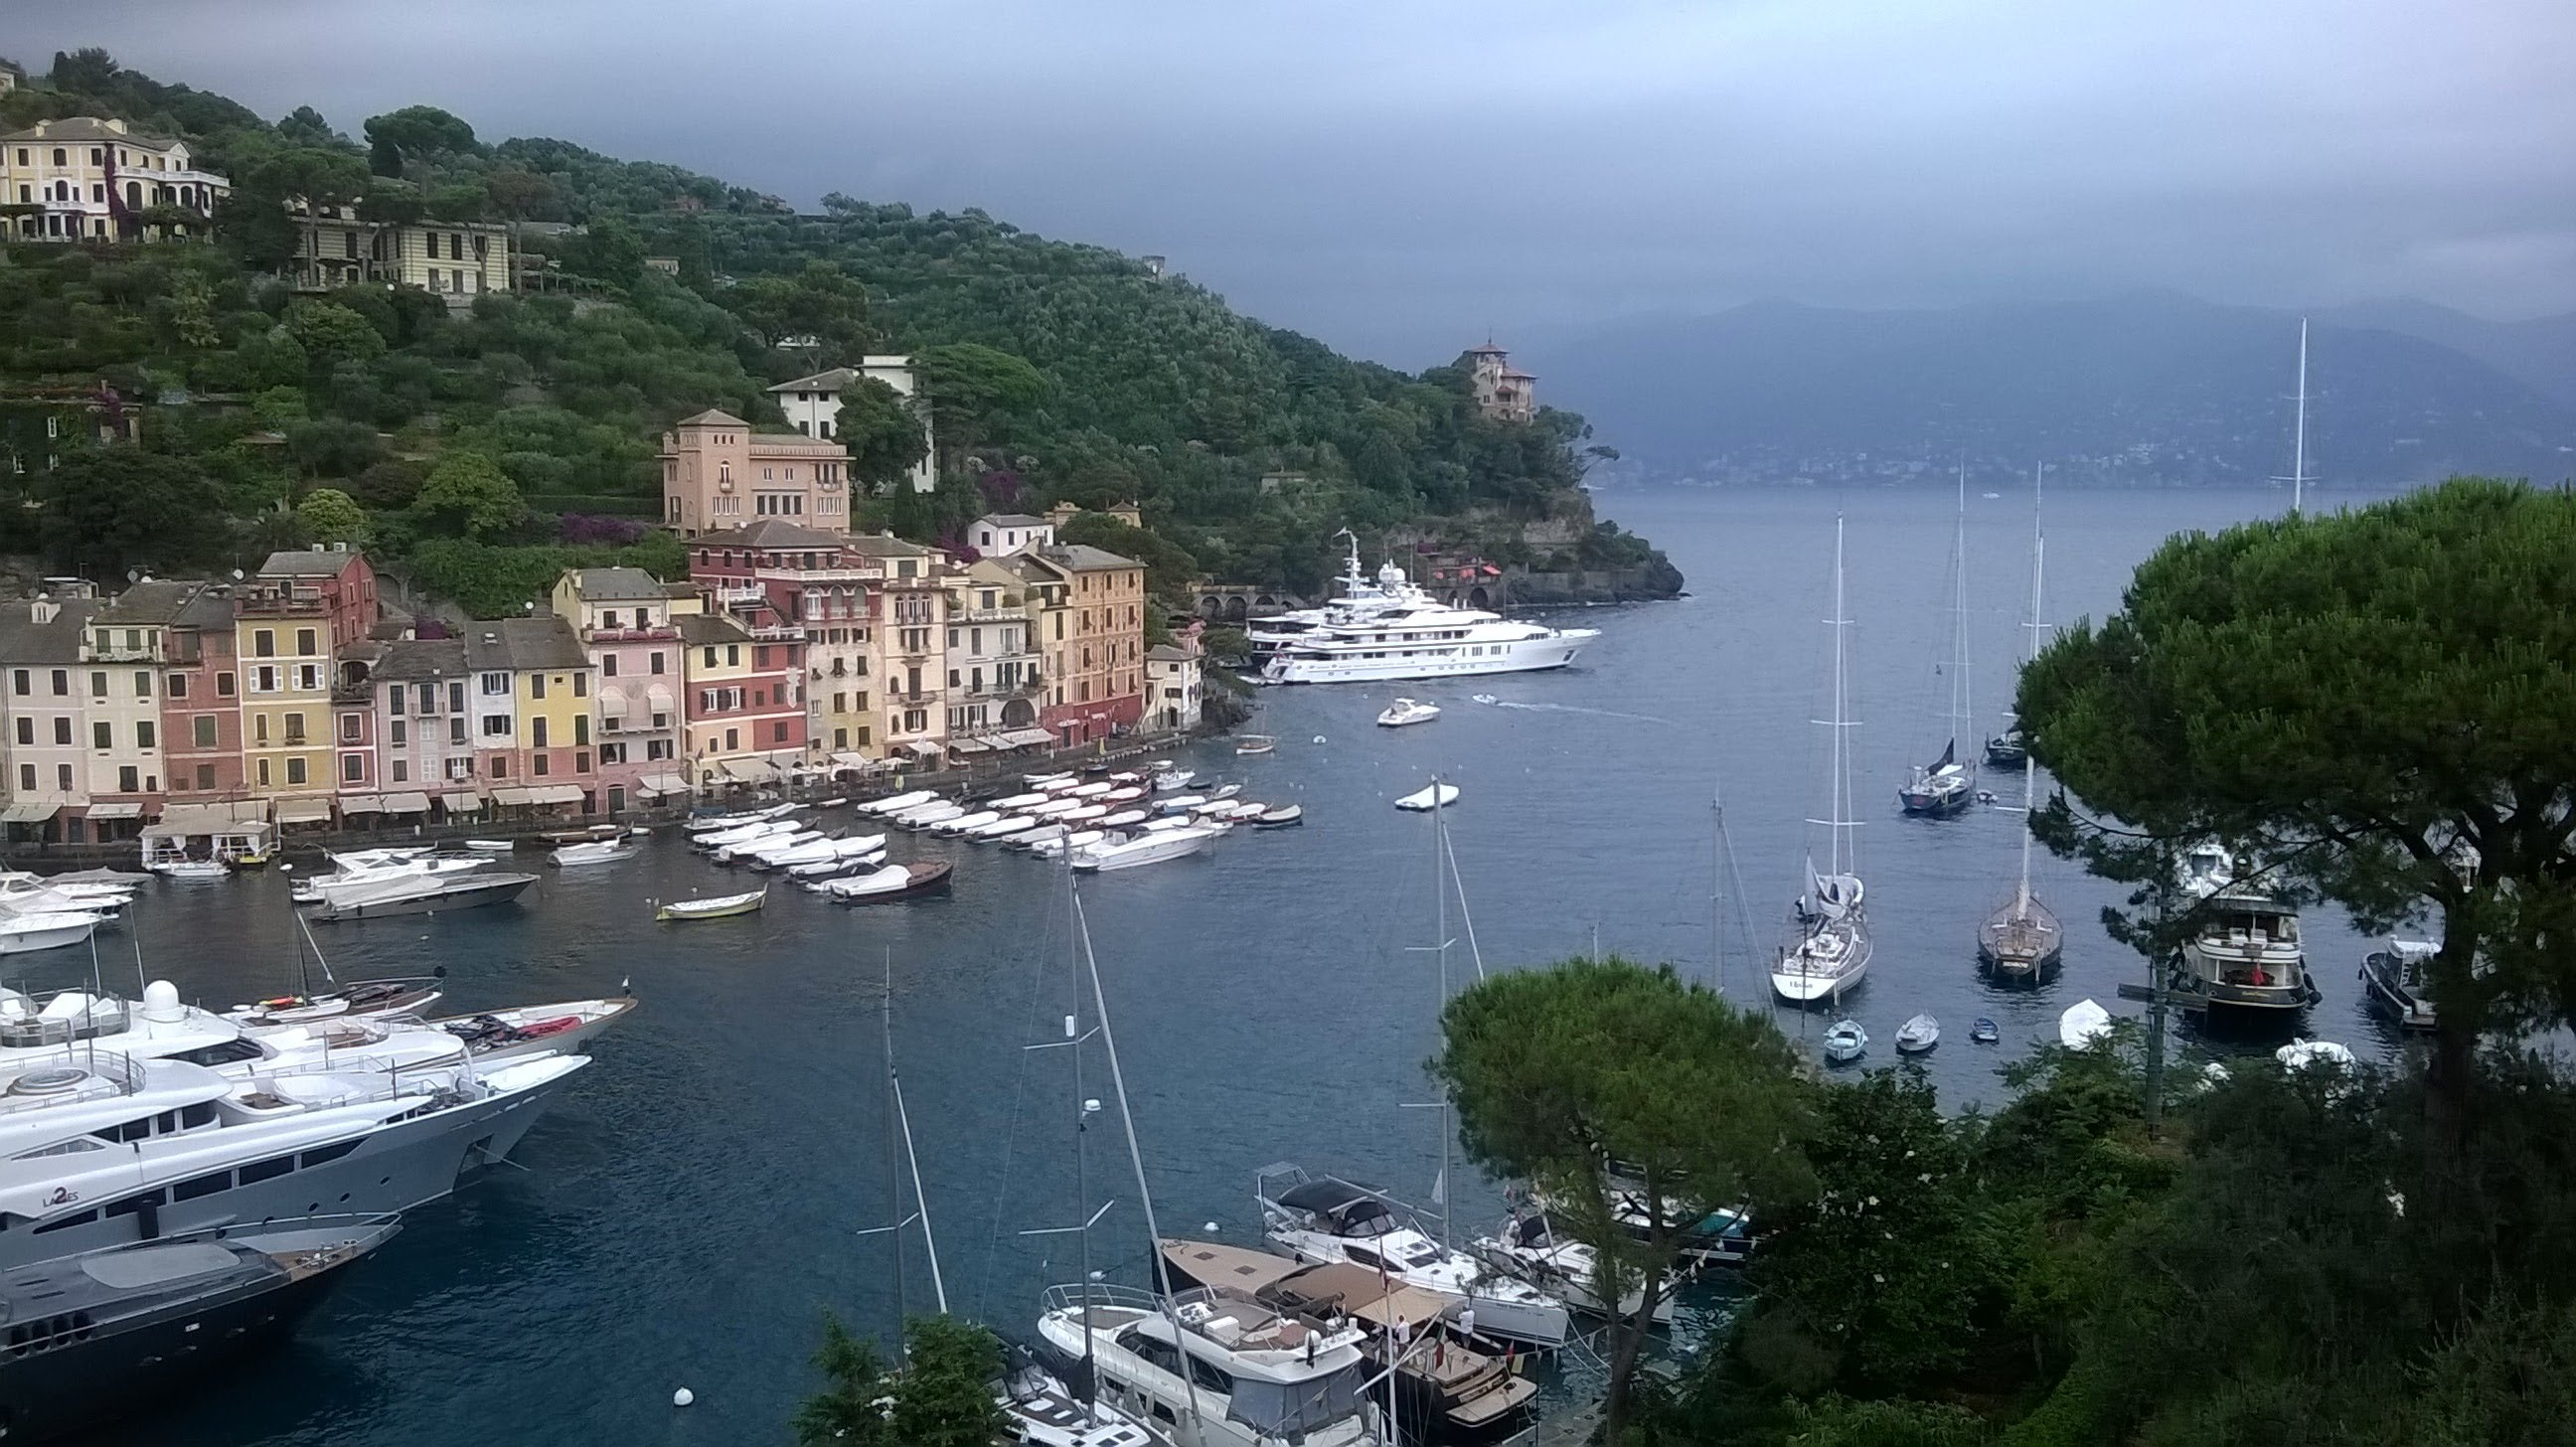 Portofino Greece tamed winds blog post 10 things every woman should learn before moving aboard (plus bonus Dad's coffee recipe)